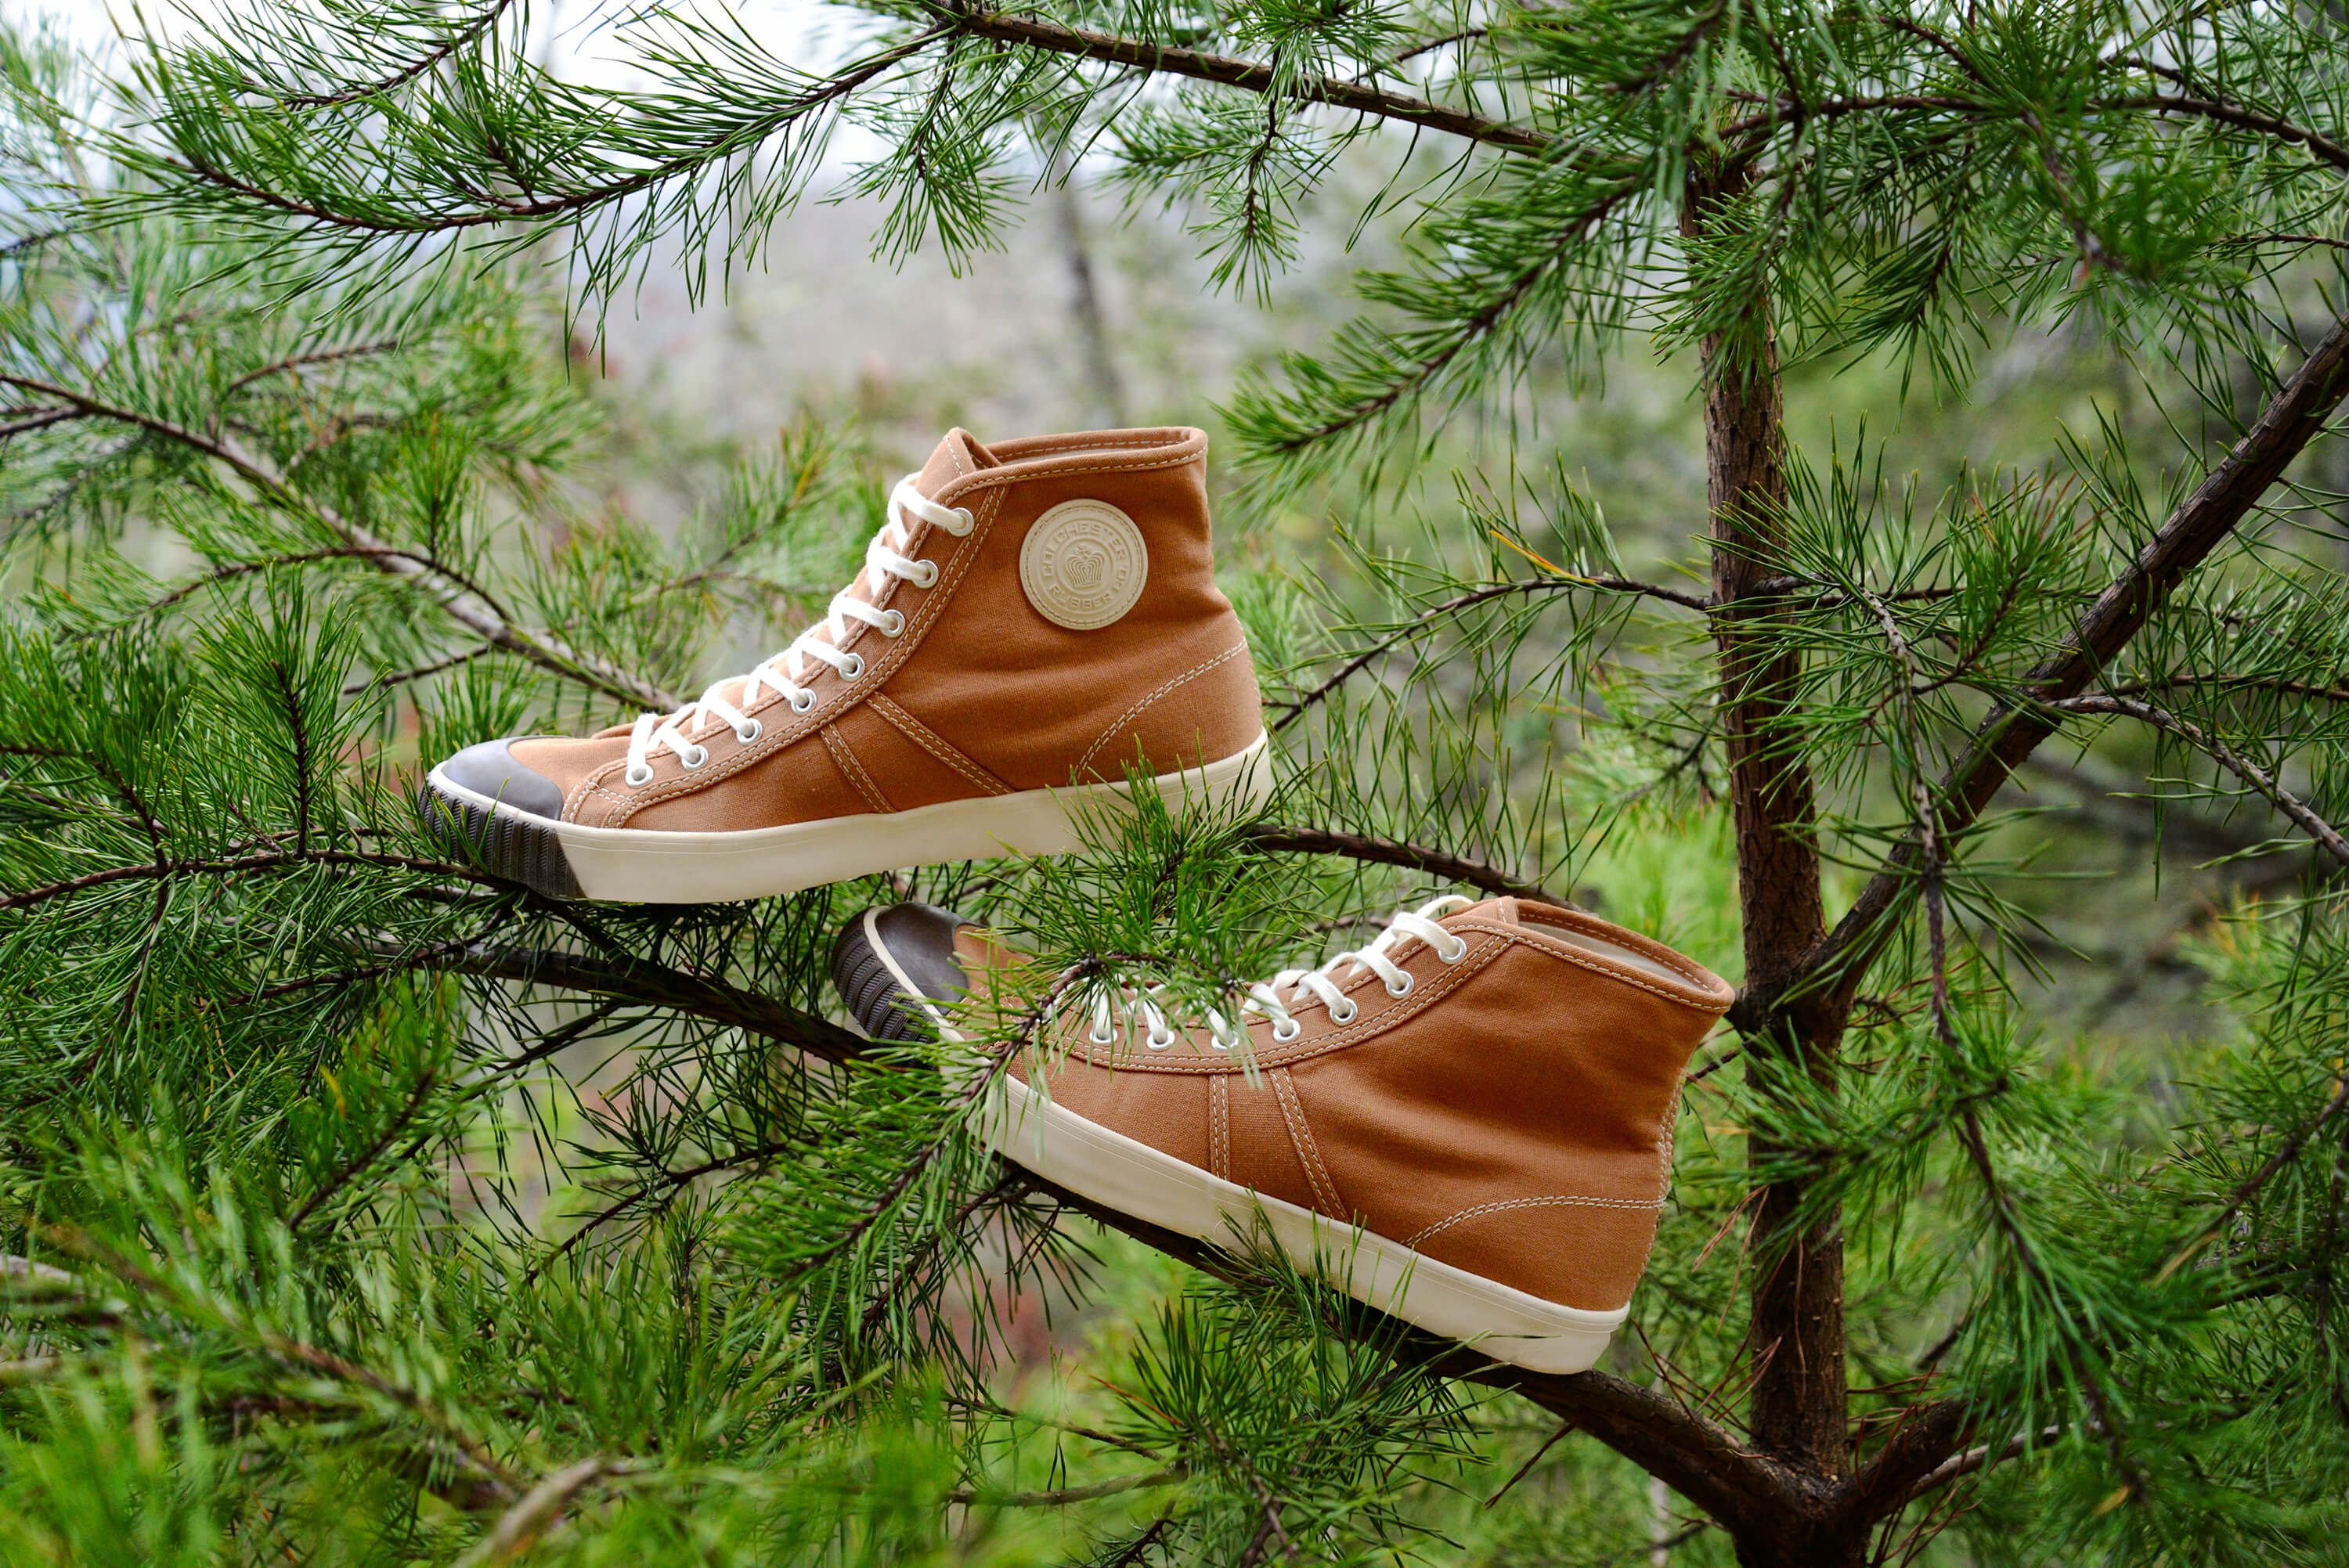 52ec52c0c29a The National Treasure from Colchester Rubber Co. is the First Pair of Basketball  Shoes Ever made and they are a true inspiration. It s like wearing a piece  ...